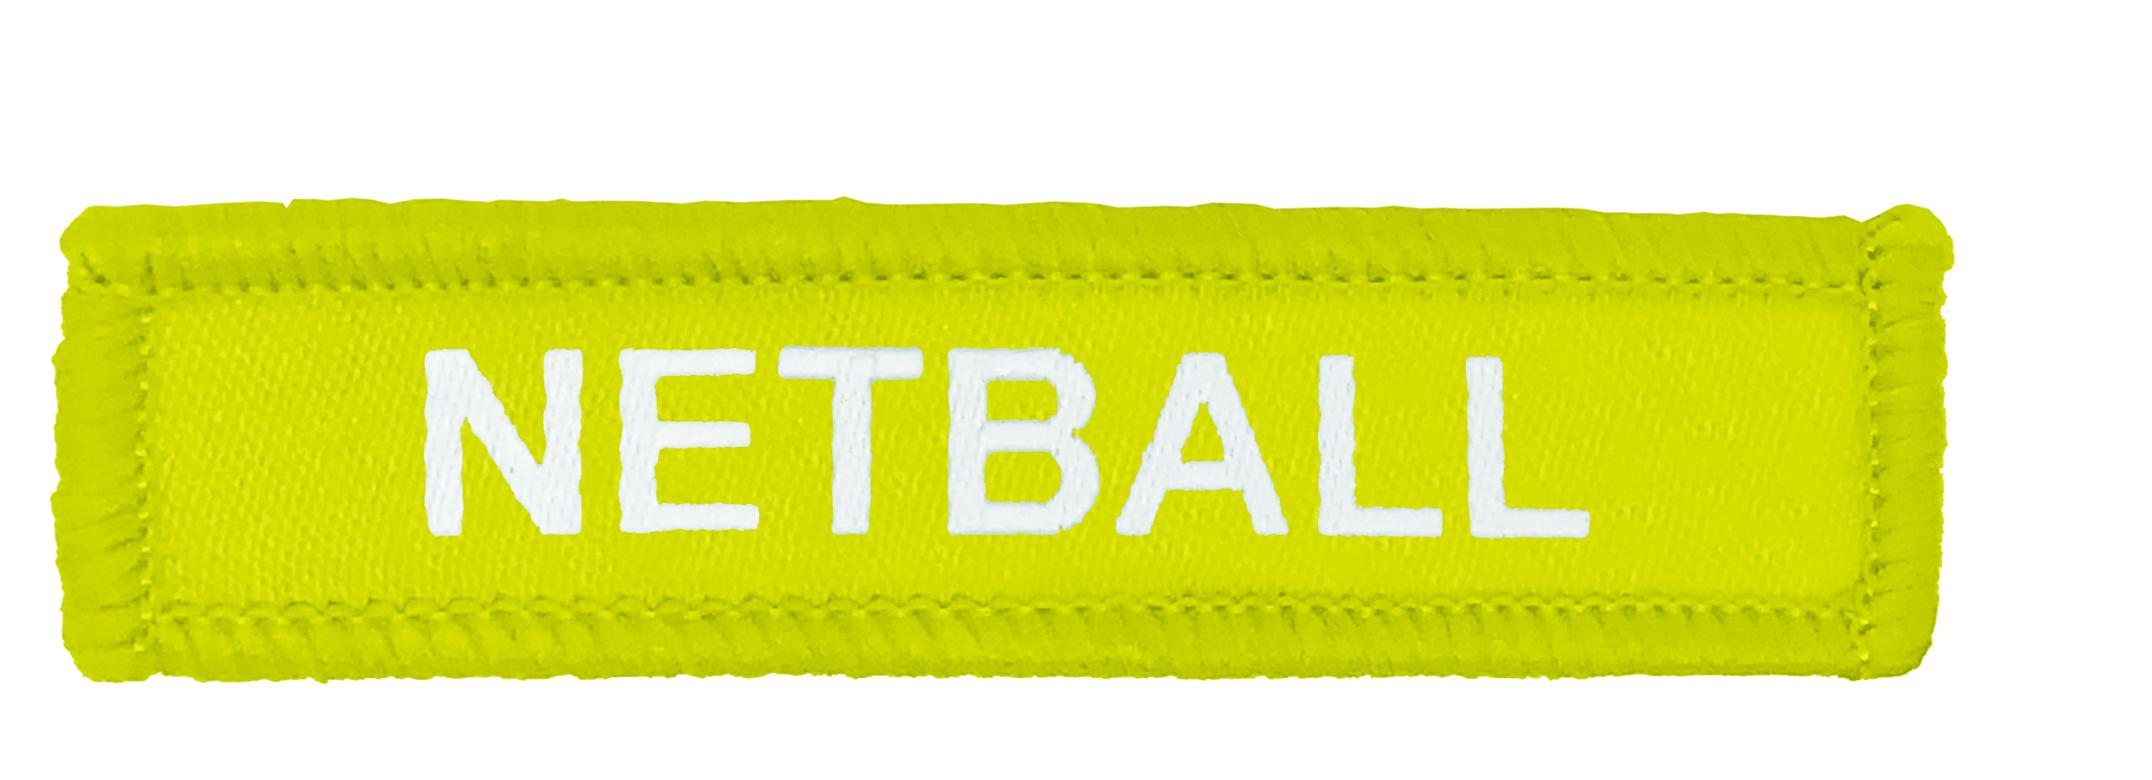 Yellow Woven Netball Badge